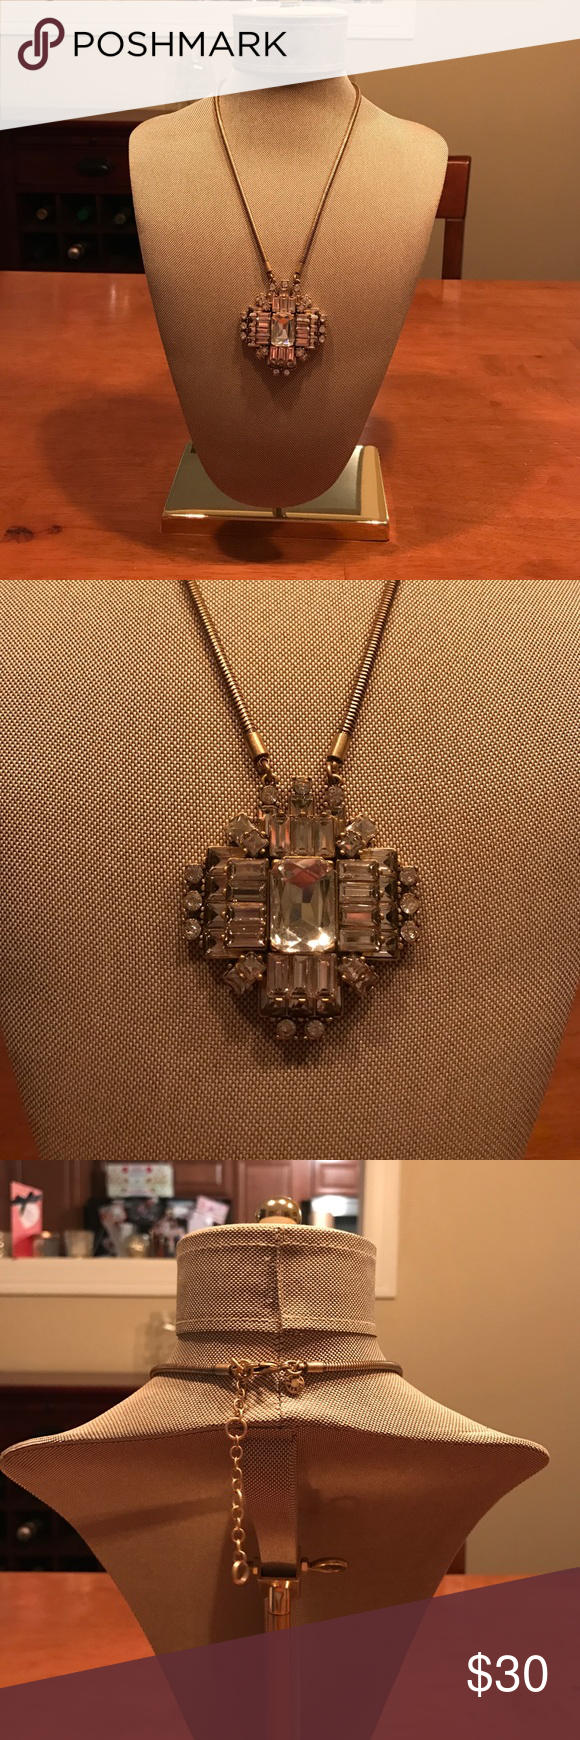 J crew pendant necklace pendants crystals and jewelry